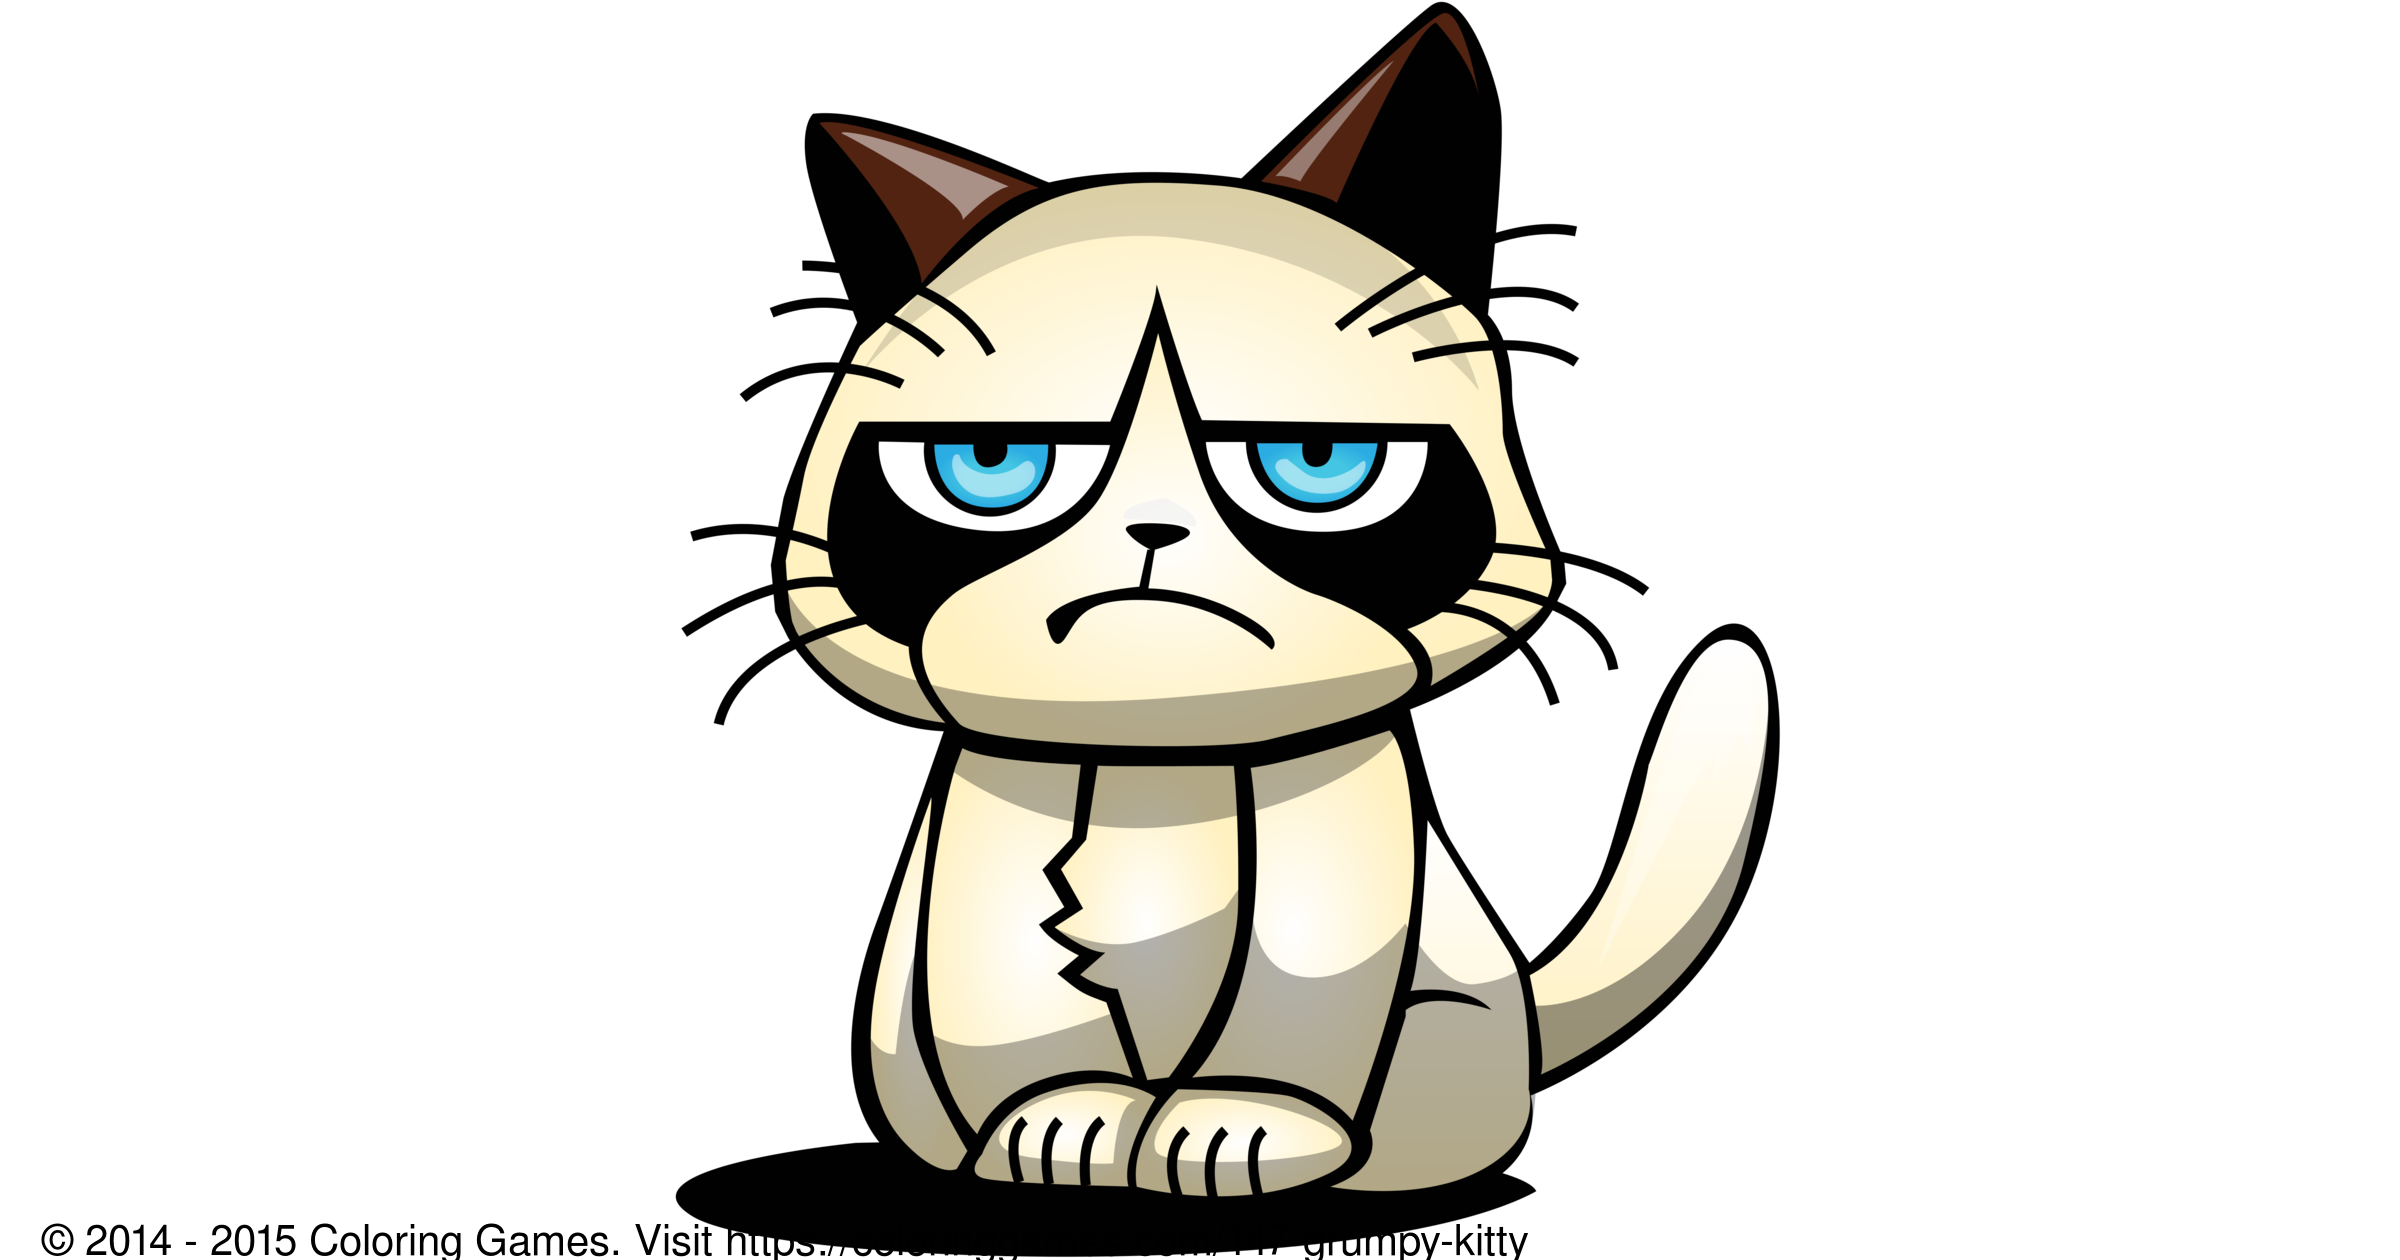 grumpy kitty coloring games and coloring pages